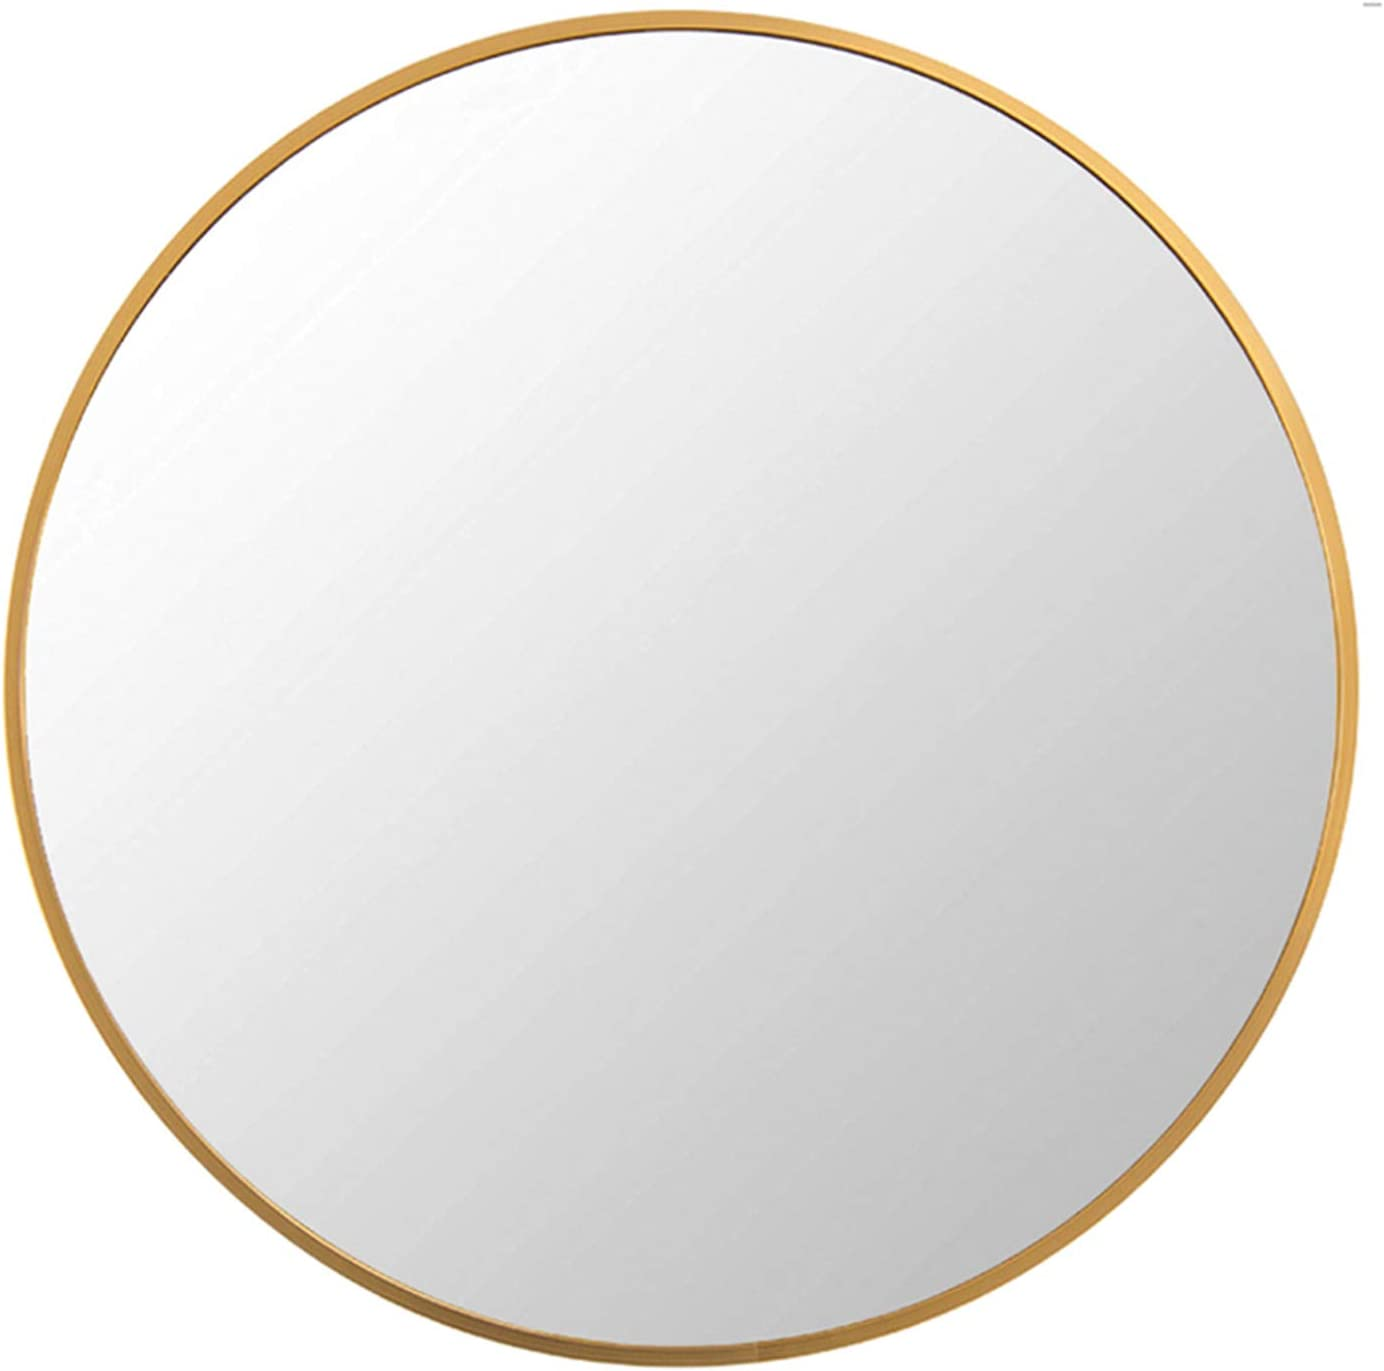 FANYUSHOW Round Mirror for Bathroom, Gold Circle Mirror for Wall Mounted, 20'' Modern Brushed Brass Metal Frame Round Mirror for Wall Decor, Vanity, Living Room, Bedroom